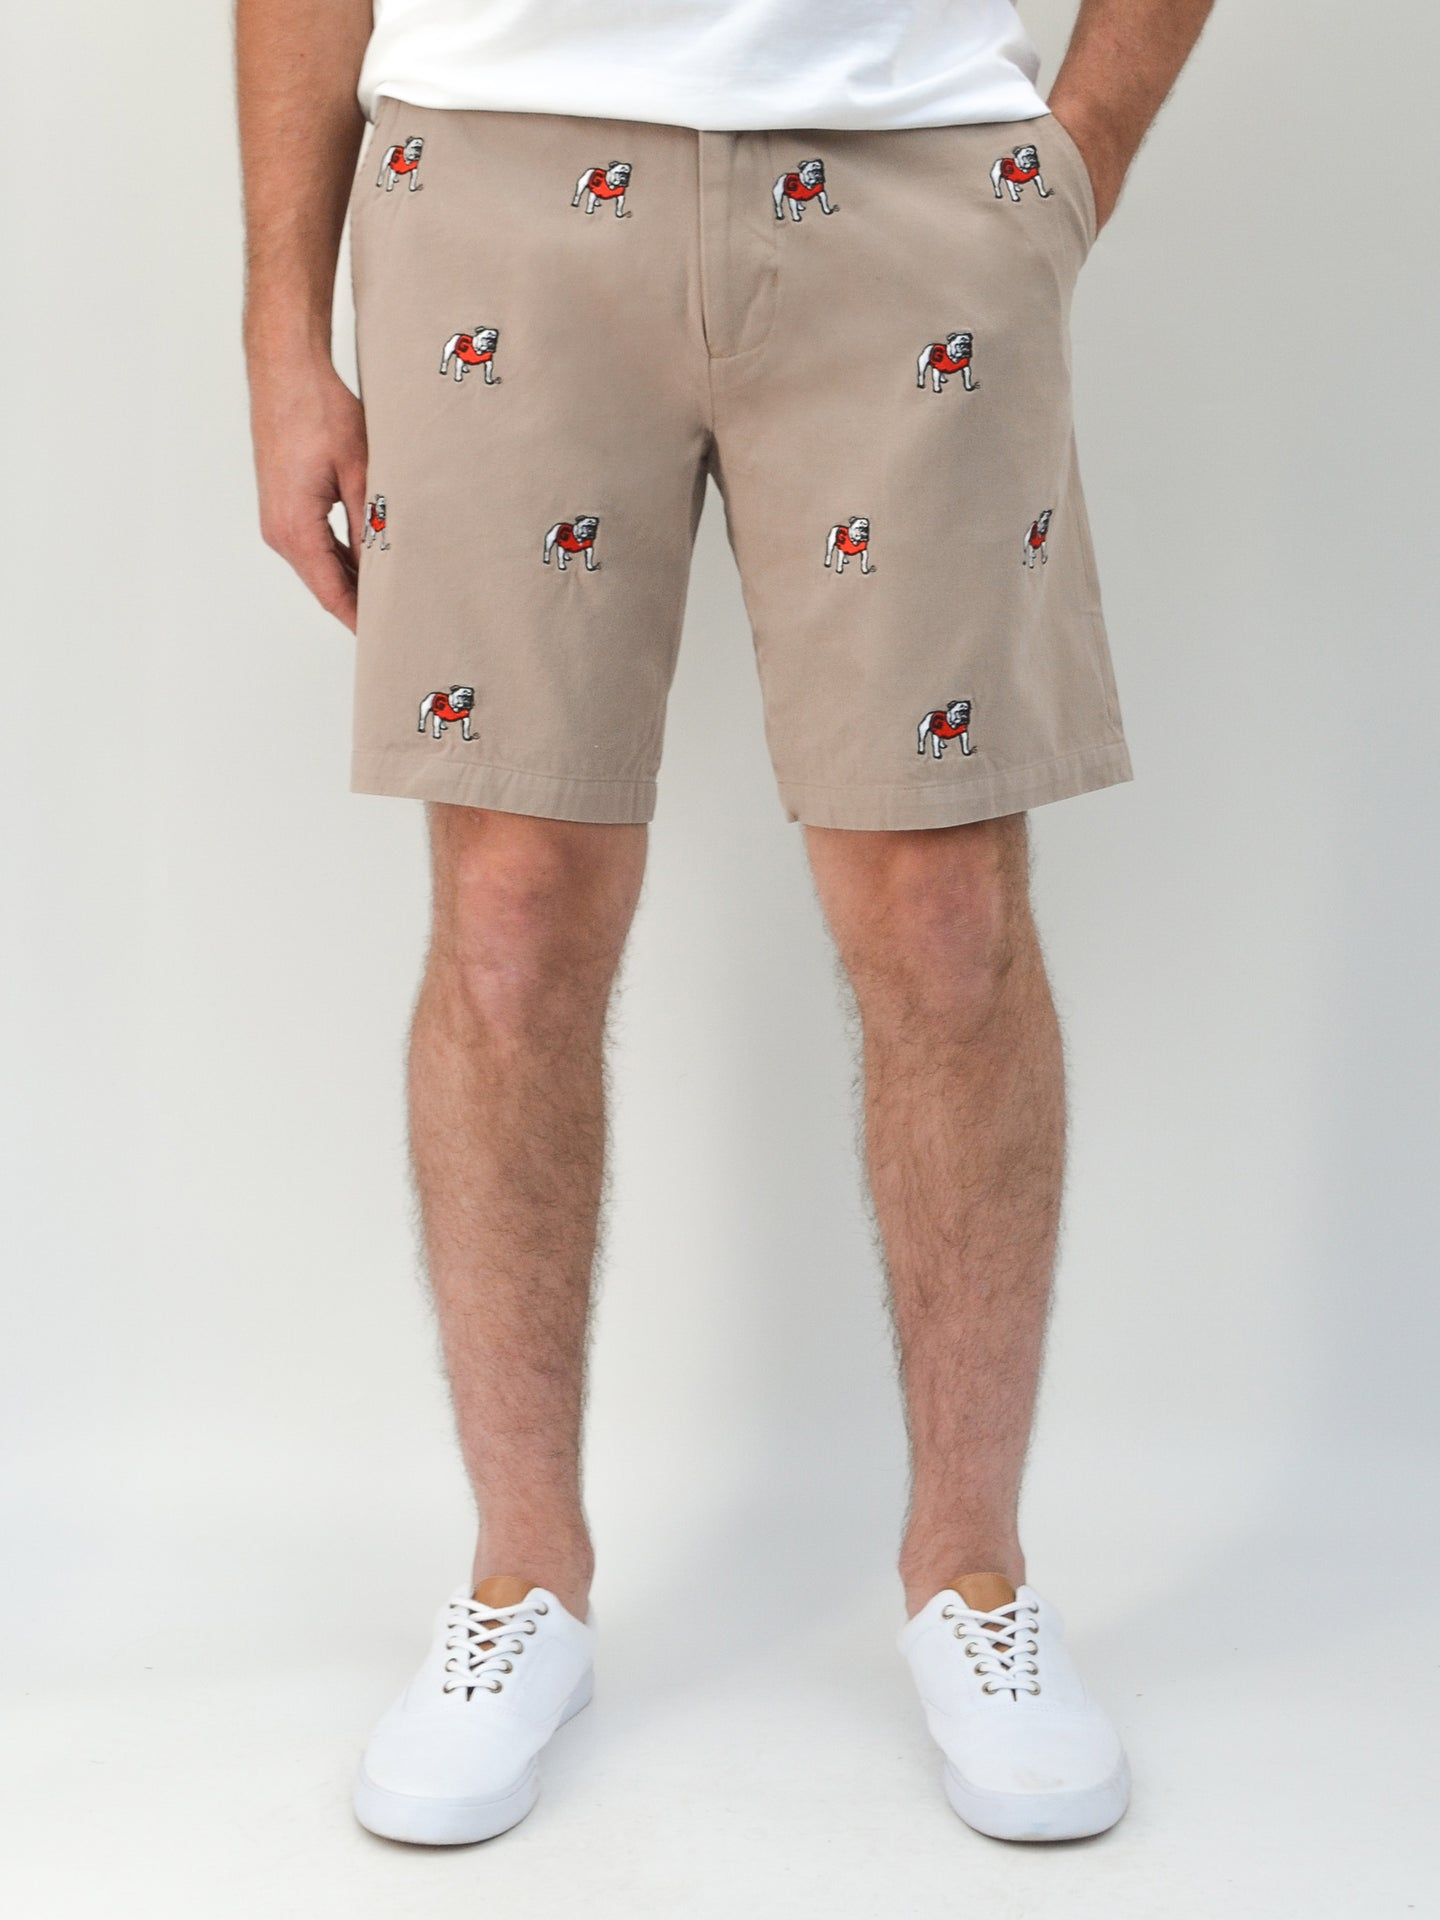 Georgia Bulldogs Khaki Shorts